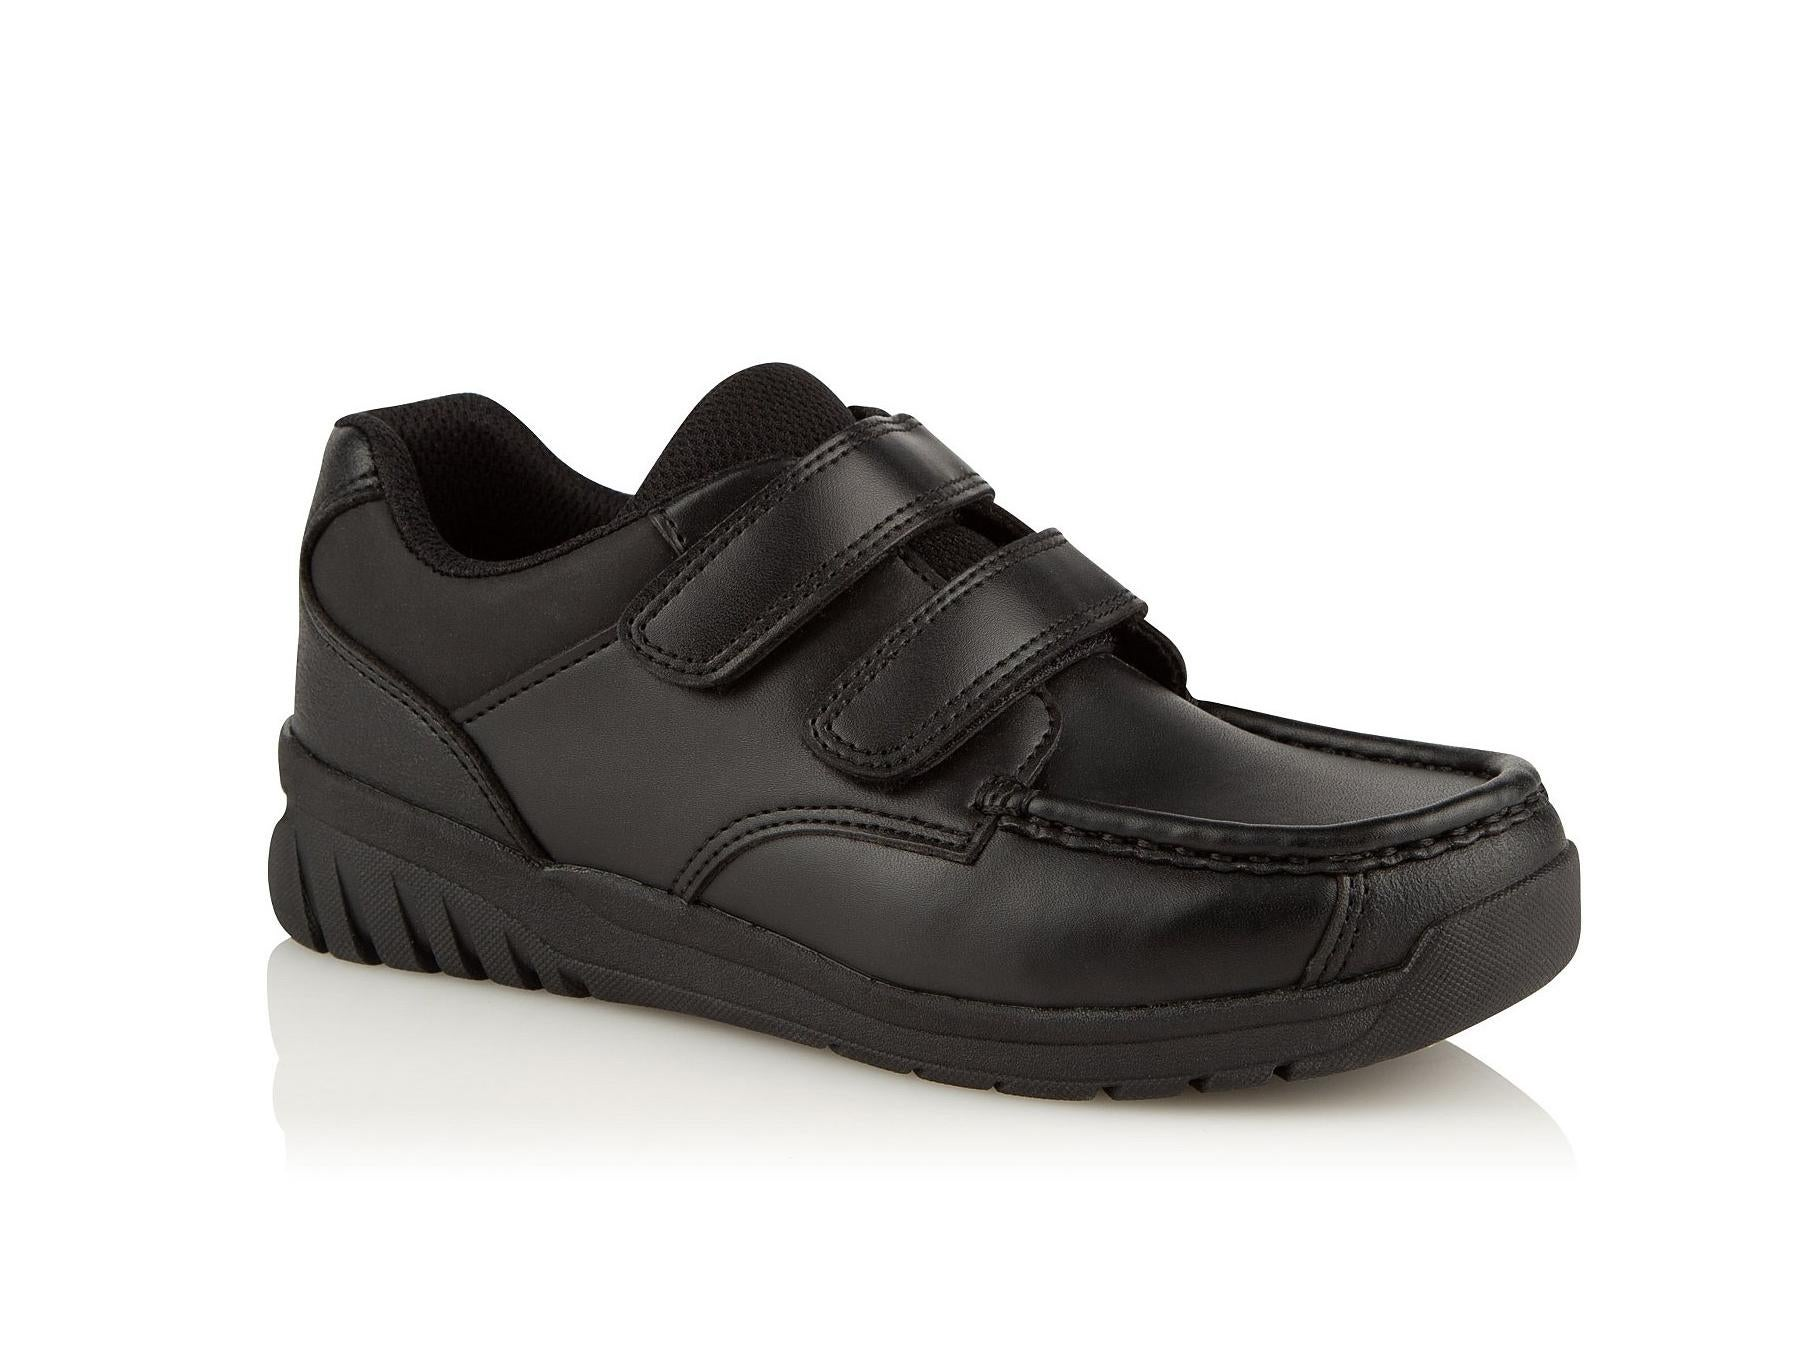 Best school shoes that are comfortable, hard-wearing and kid